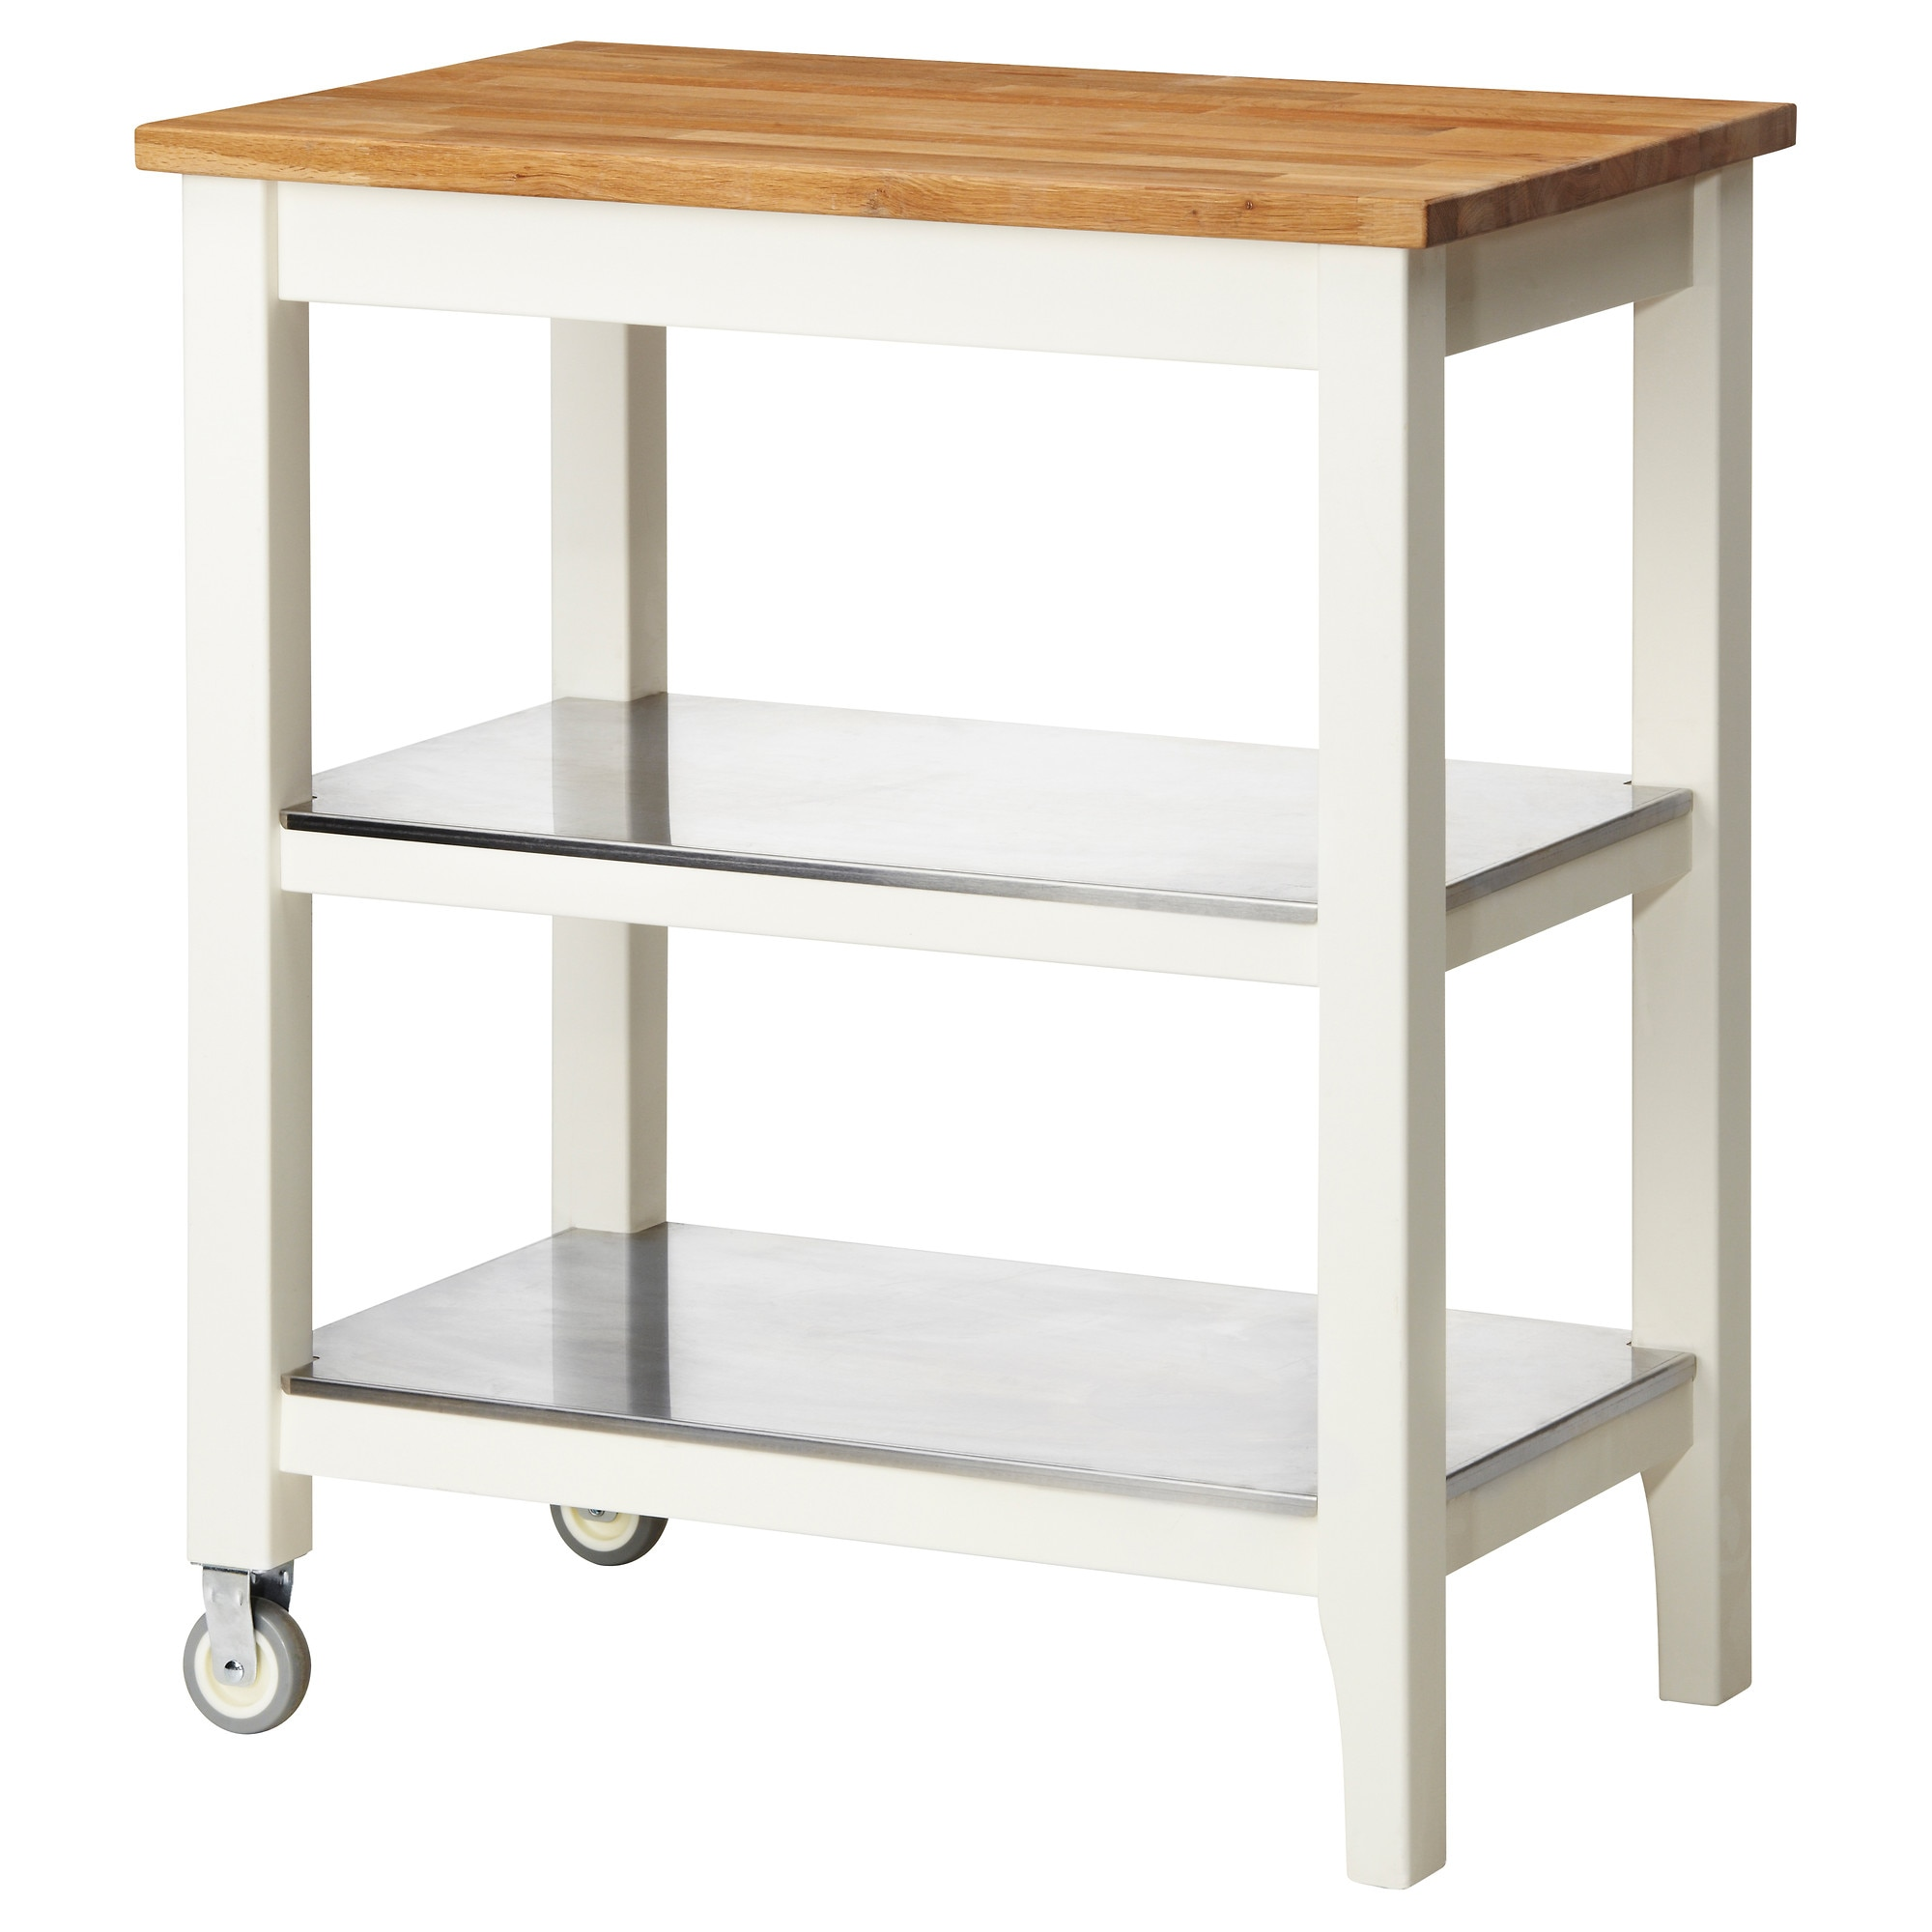 Steel Shelf For Kitchen Stenstorp Kitchen Trolley Ikea